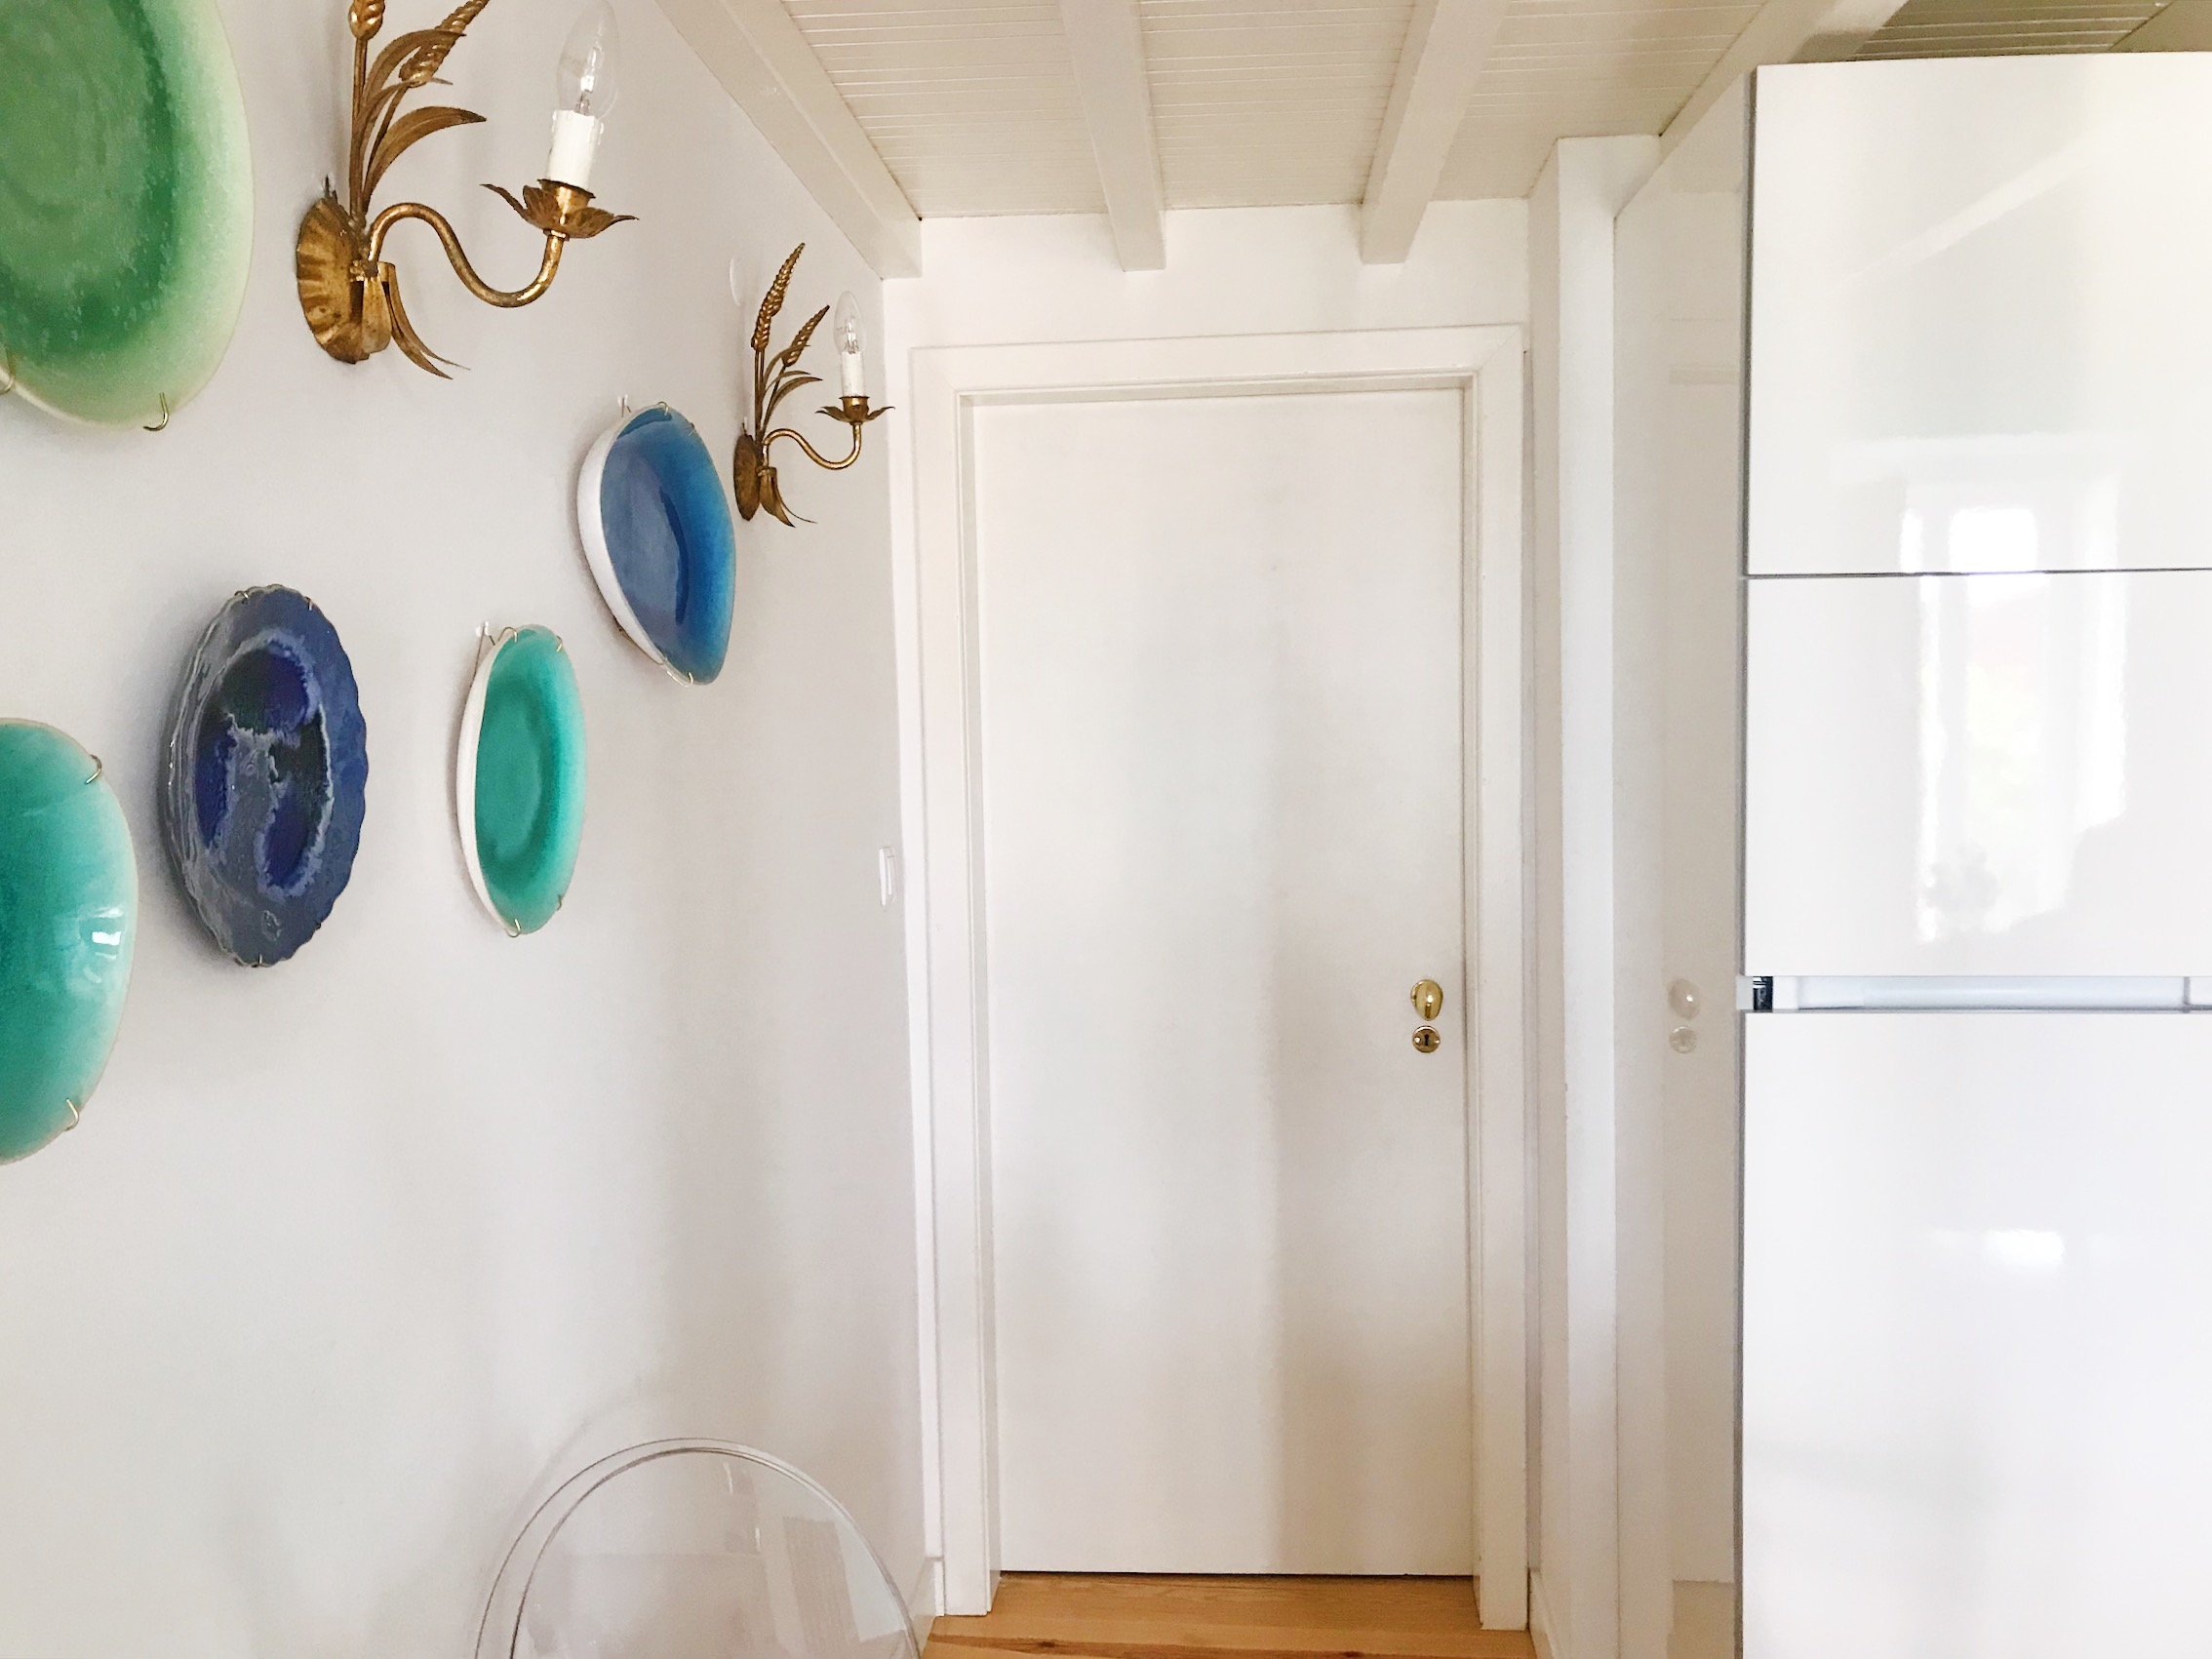 Door to second bedroom